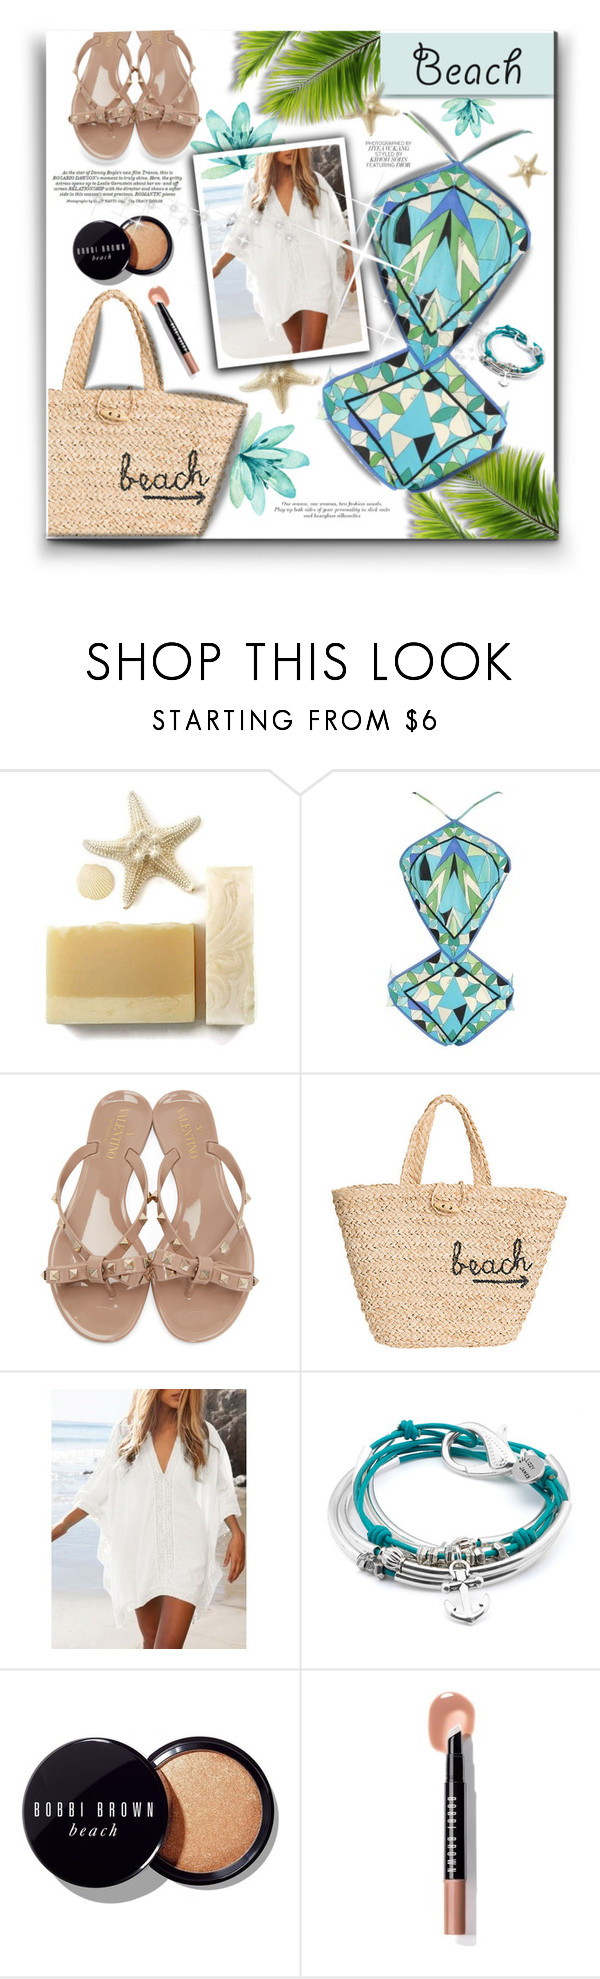 """""""Beach Day🌴"""" by chicpeacelove ❤ liked on Polyvore featuring Emilio Pucci, Valentino, Hat Attack, Lizzy James and Bobbi Brown Cosmetics"""